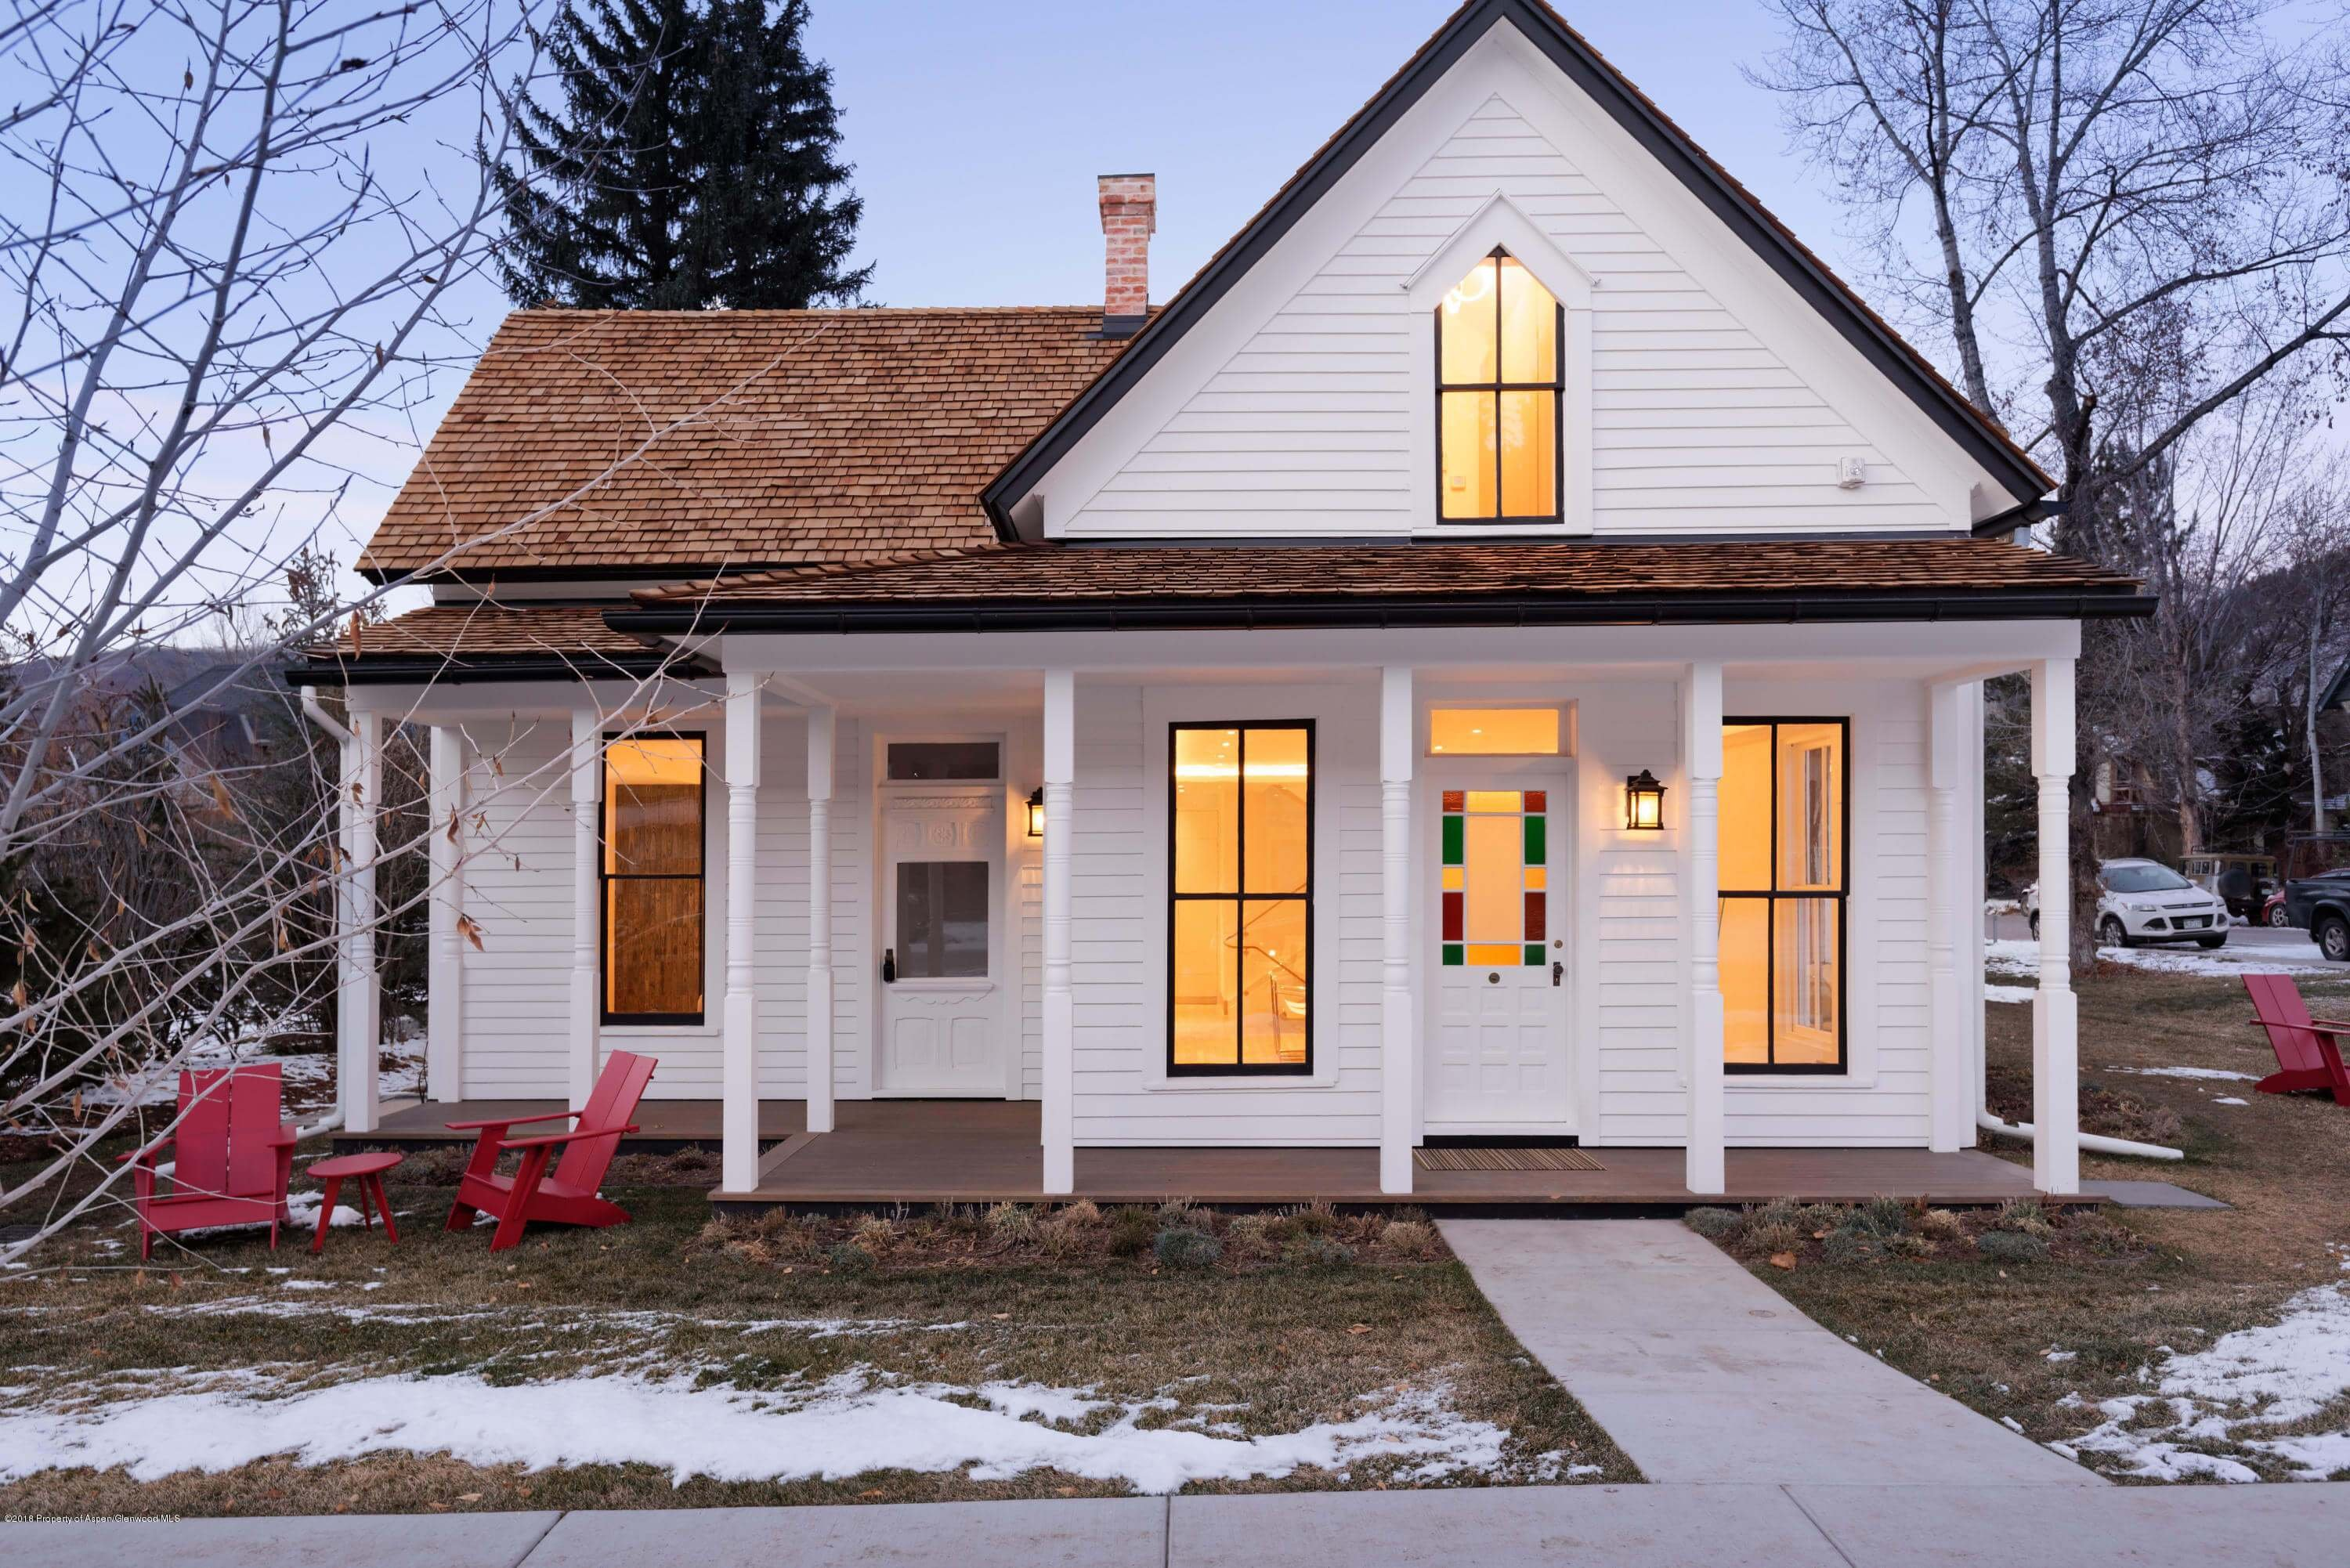 Rebuilt Historic Aspen Victorian Home at 232 E Bleeker St Sells at $9.5M/$2,493 Sq Ft Furnished Image